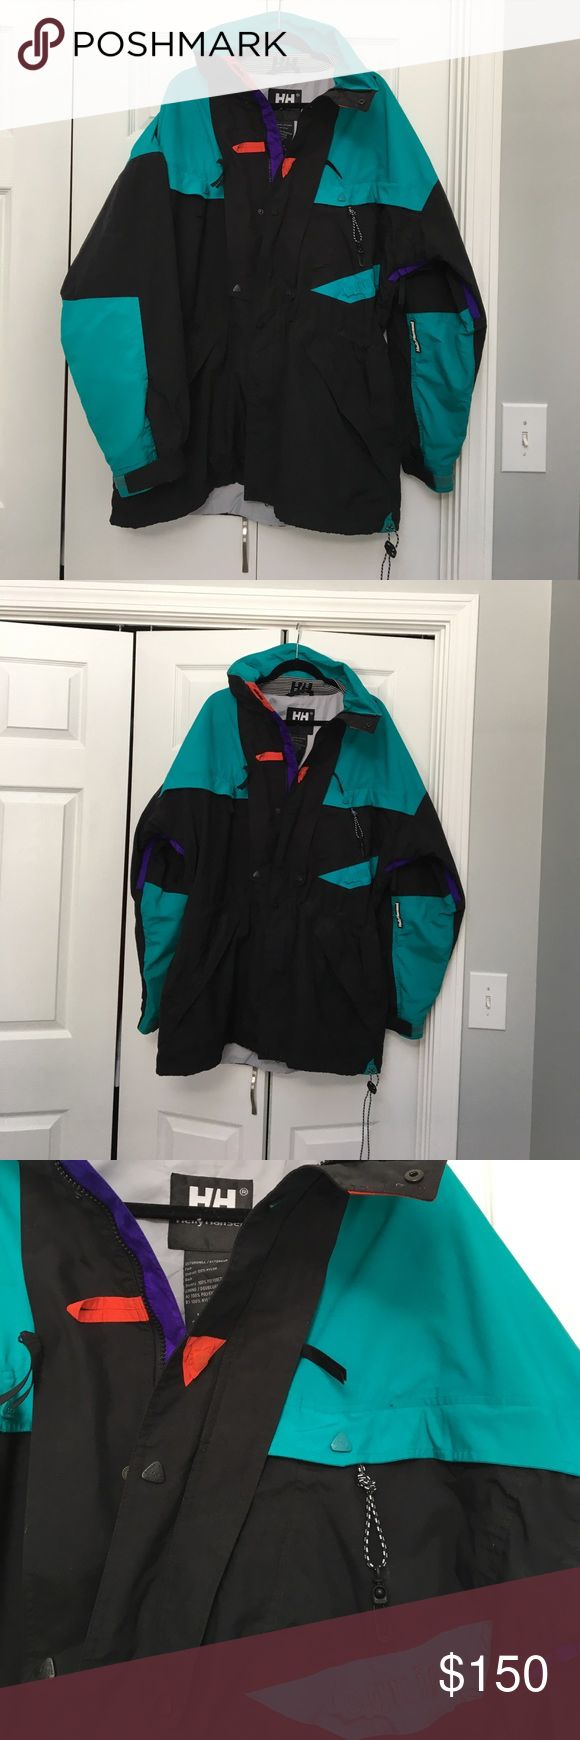 Vintage Helly Hansen Helly-Tech ski jacket,  XL Awesome Vintage Helly Hansen Men's ski jacket size XL. Offers and questions welcome! Helly Hansen Jackets & Coats Ski & Snowboard